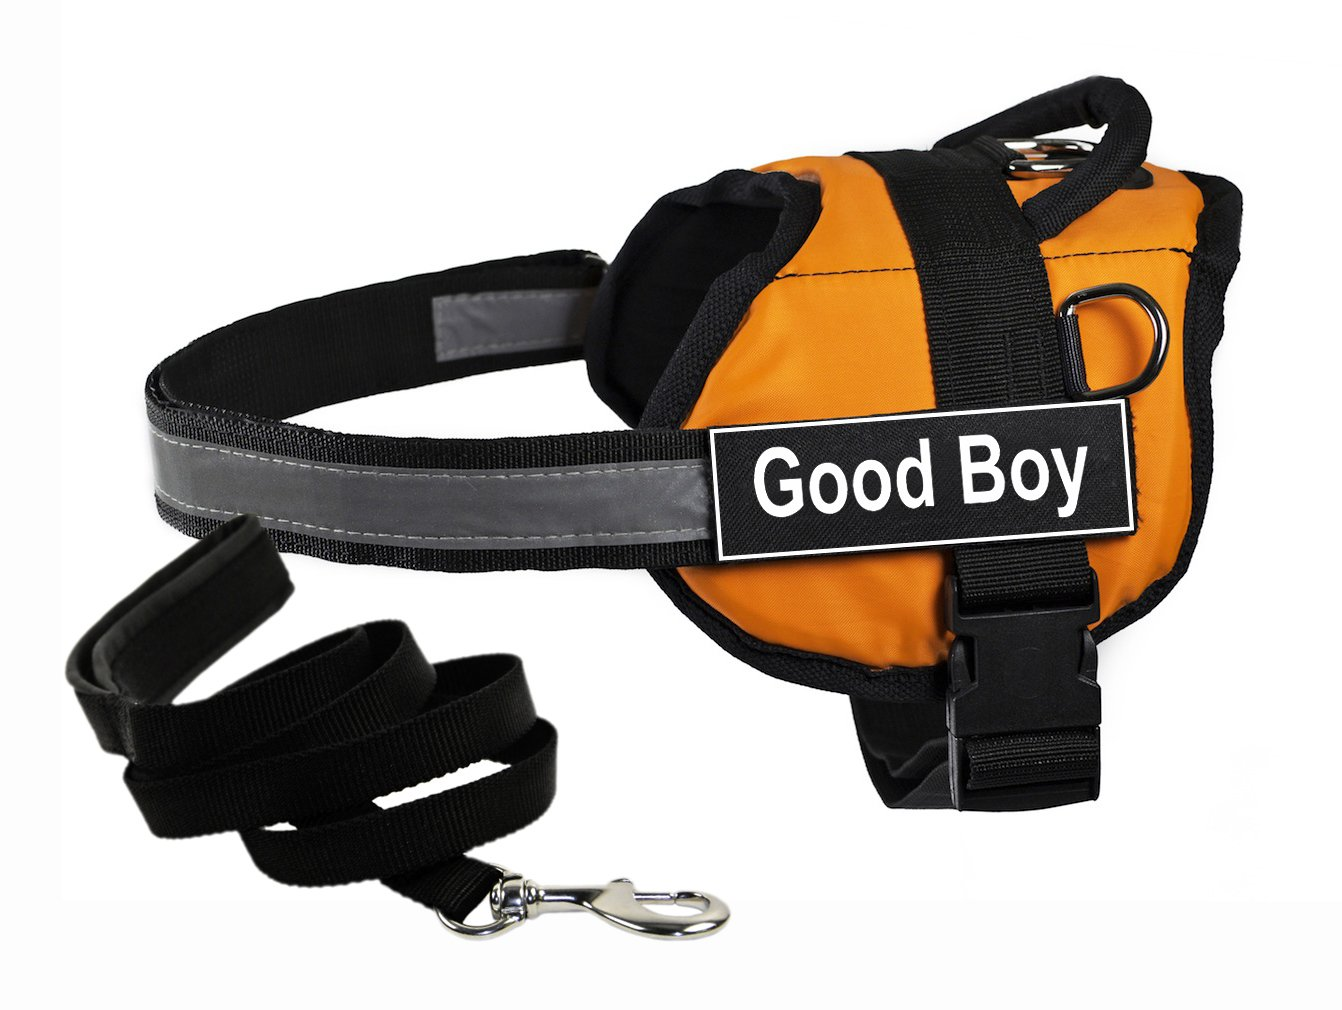 Dean & Tyler's DT Works orange Good BOY  Harness with Chest Padding, Small, and Black 6 ft Padded Puppy Leash.